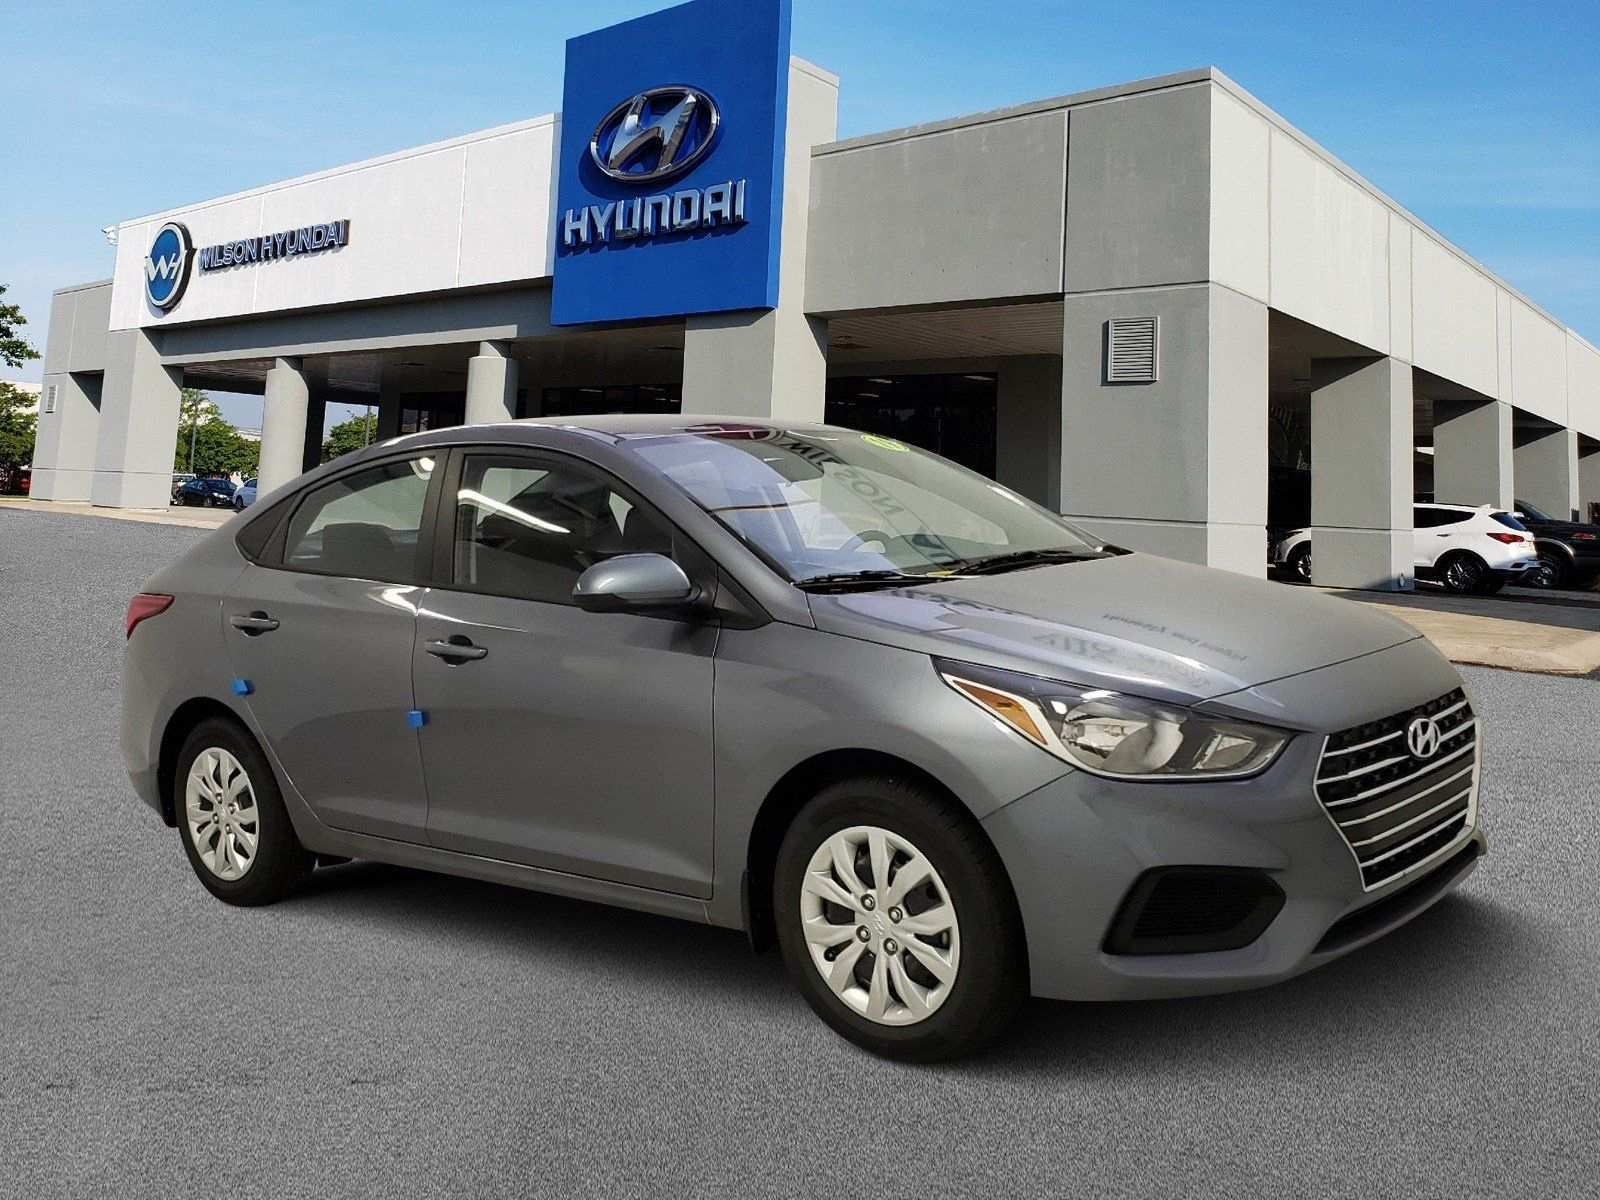 21 All New 2020 Hyundai Accent Hatchback Reviews